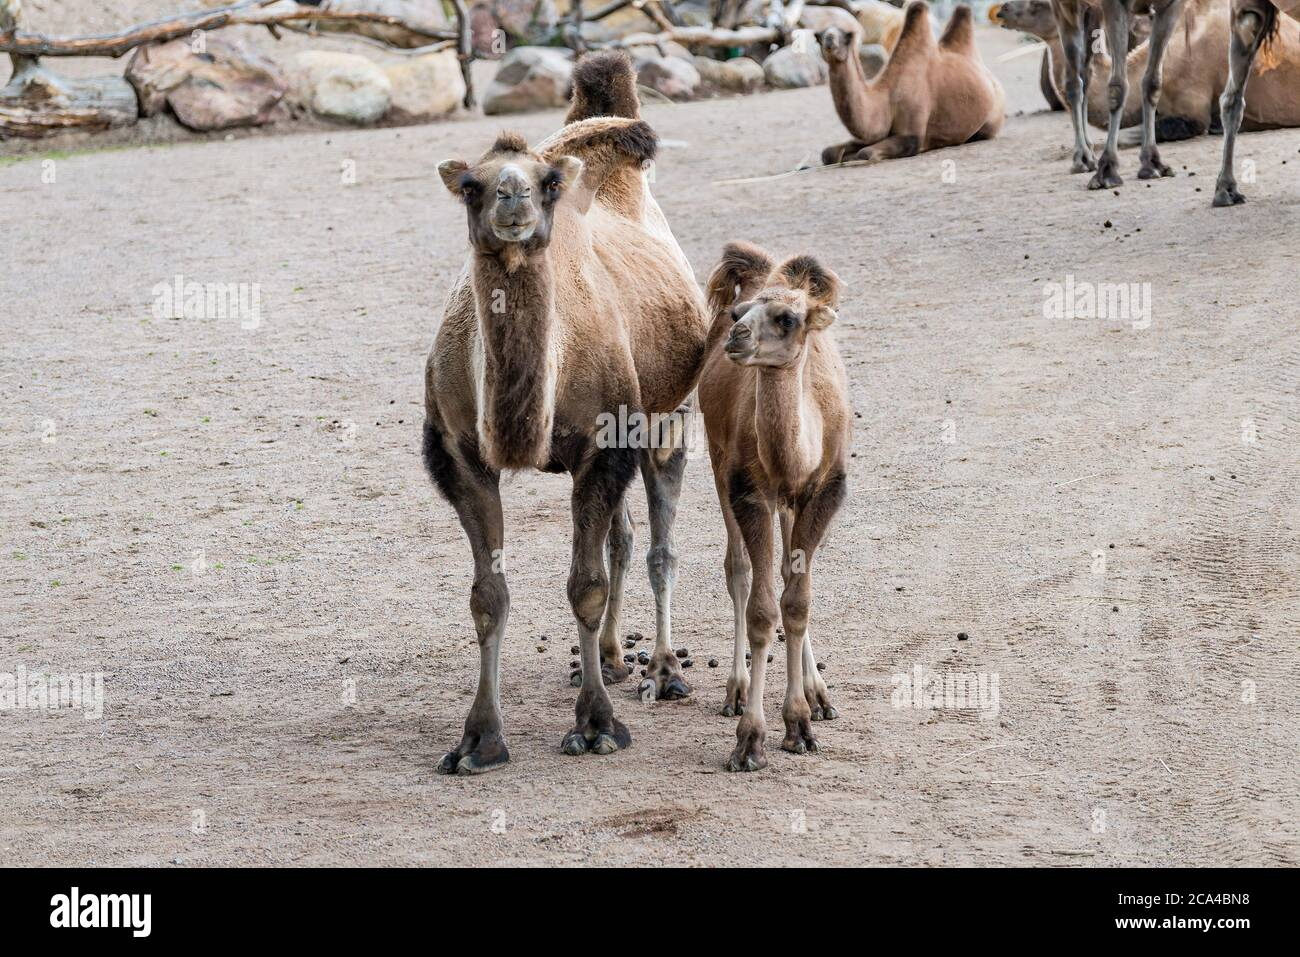 """A camel is an even-toed ungulate in the genus Camelus that bears distinctive fatty deposits known as """"humps"""" on its back. Stock Photo"""